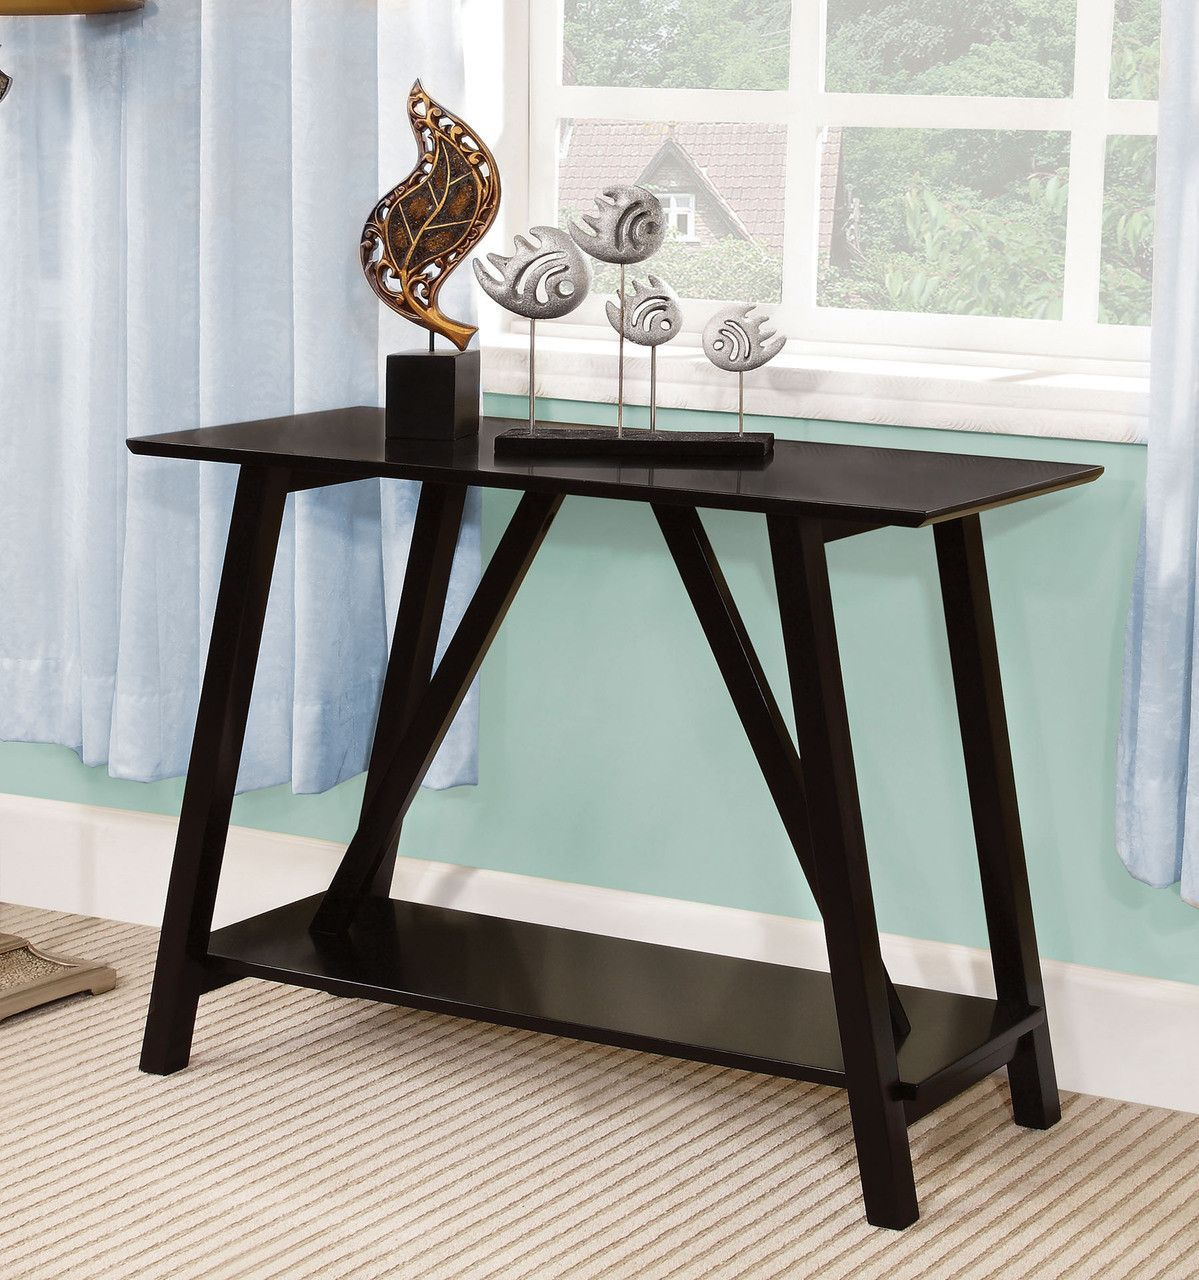 ELGG This Small Table Is Great For An Entry Way Or Hall Of